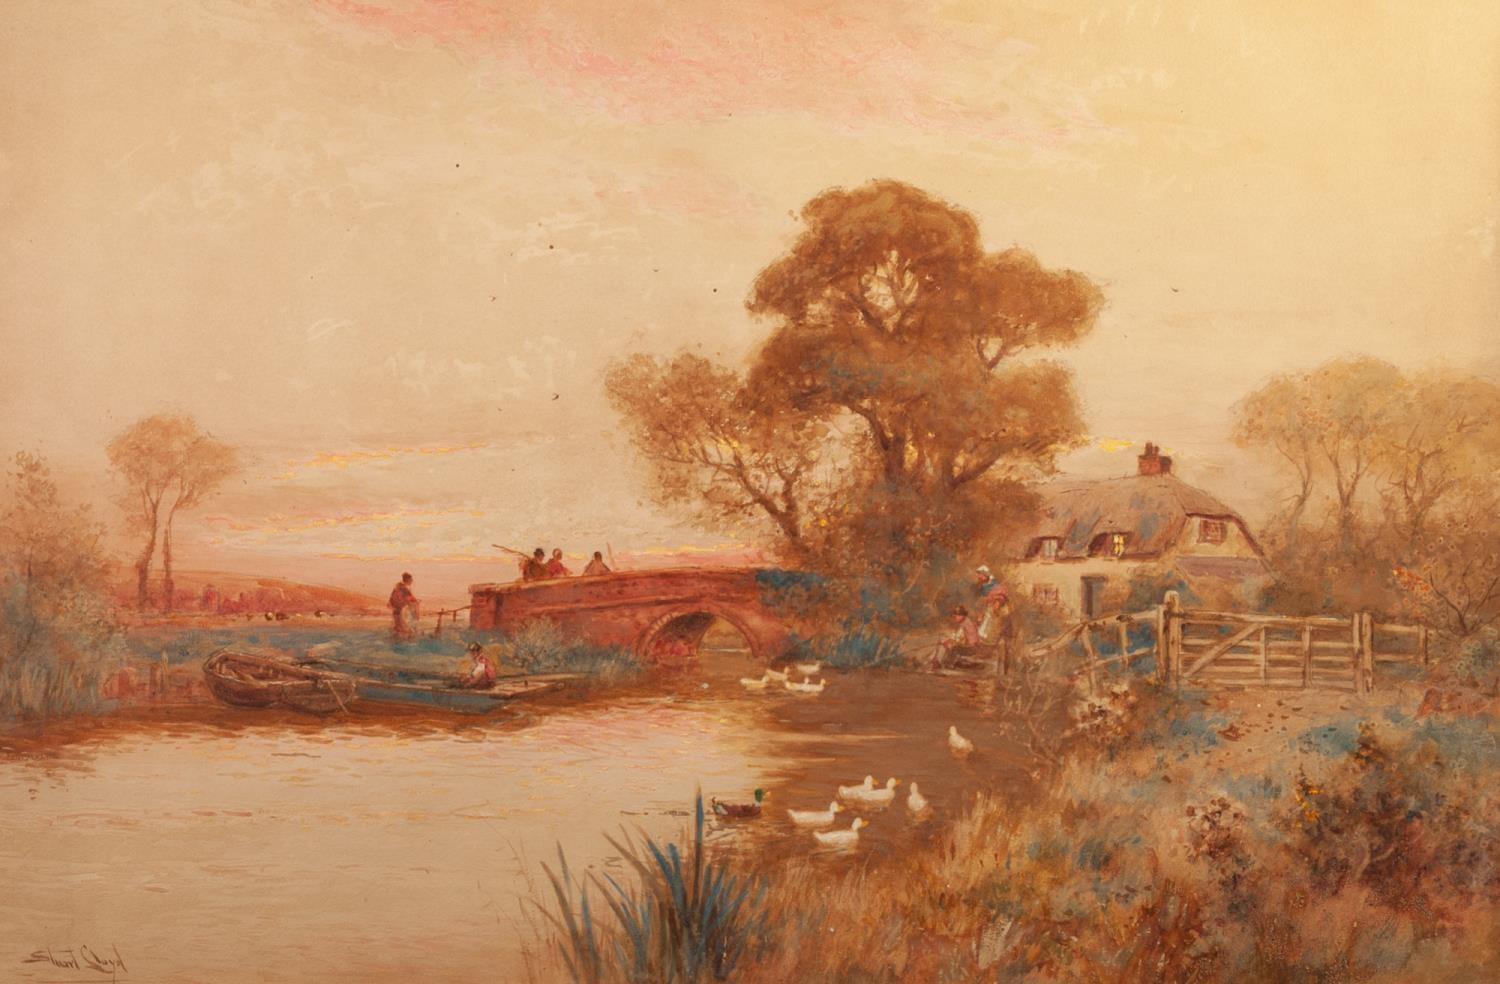 Lot 195 - WALTER STUART LLOYD (1845 - 1929) Watercolour A river landscape at sunset with figures crossing a